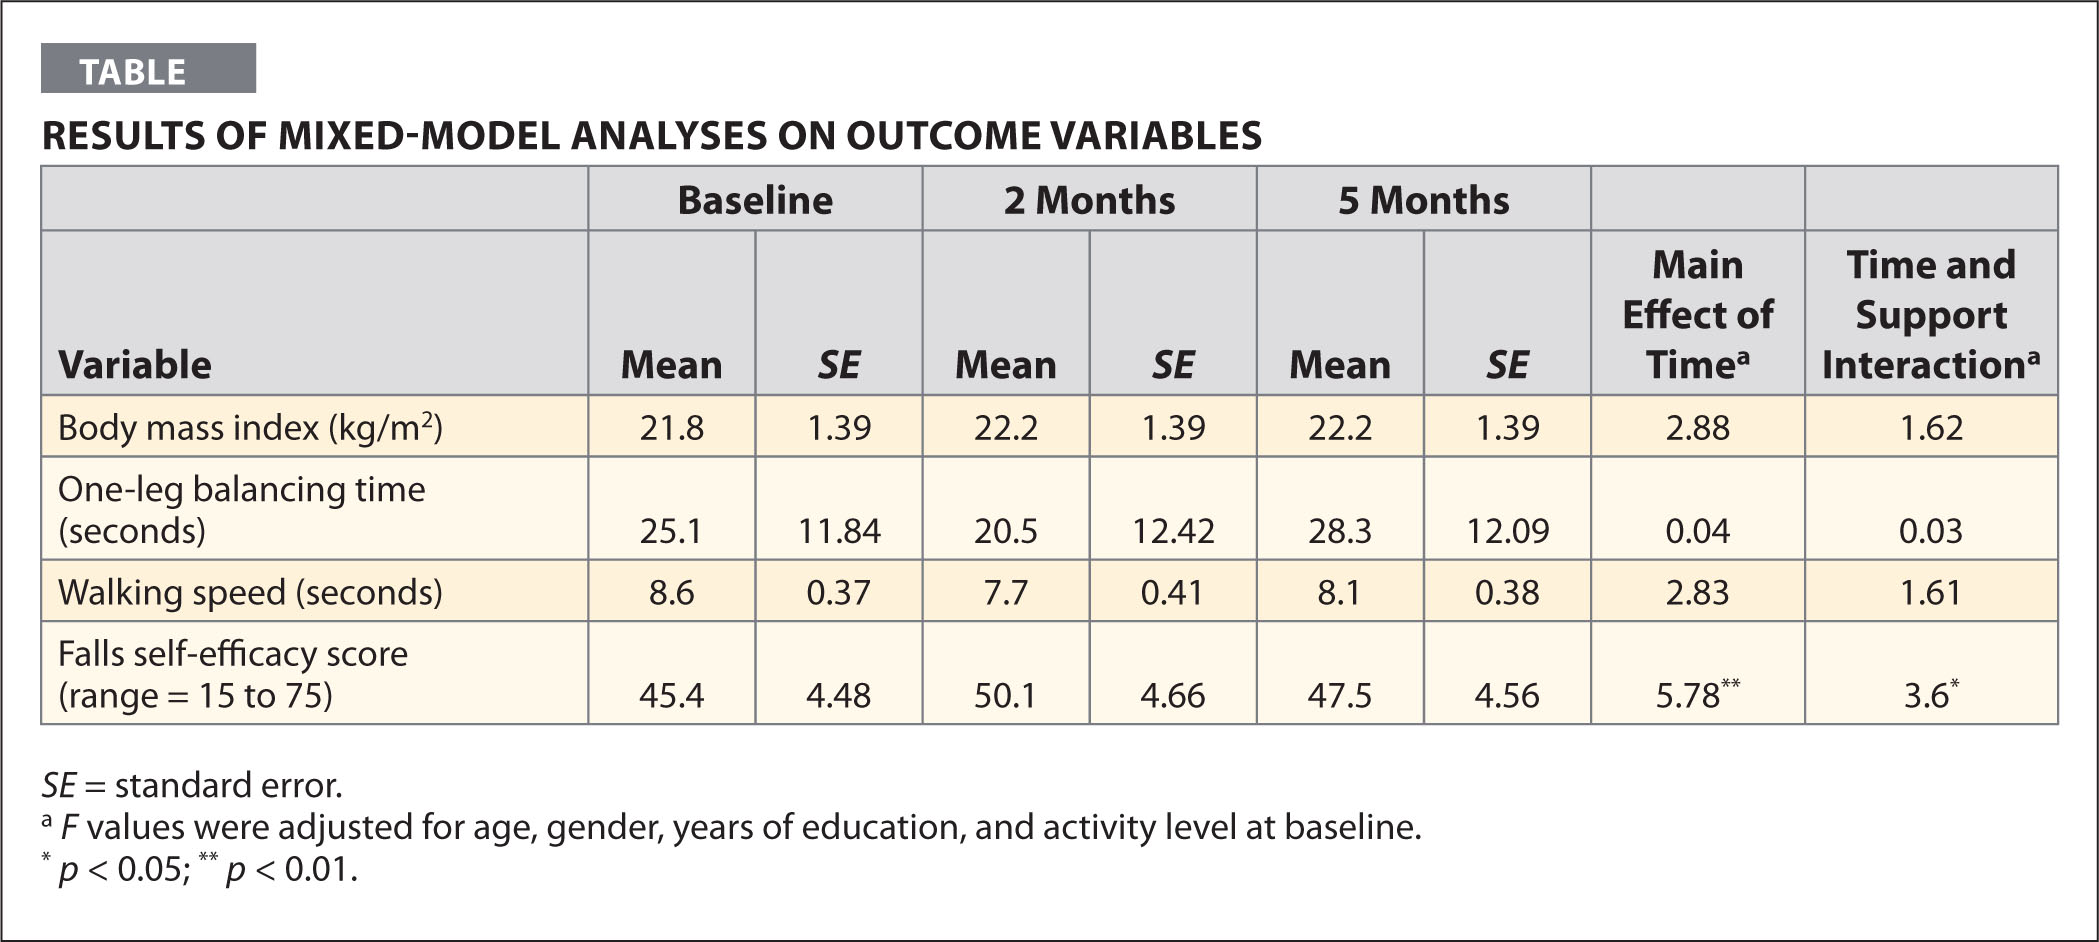 Results of Mixed-Model Analyses on Outcome Variables